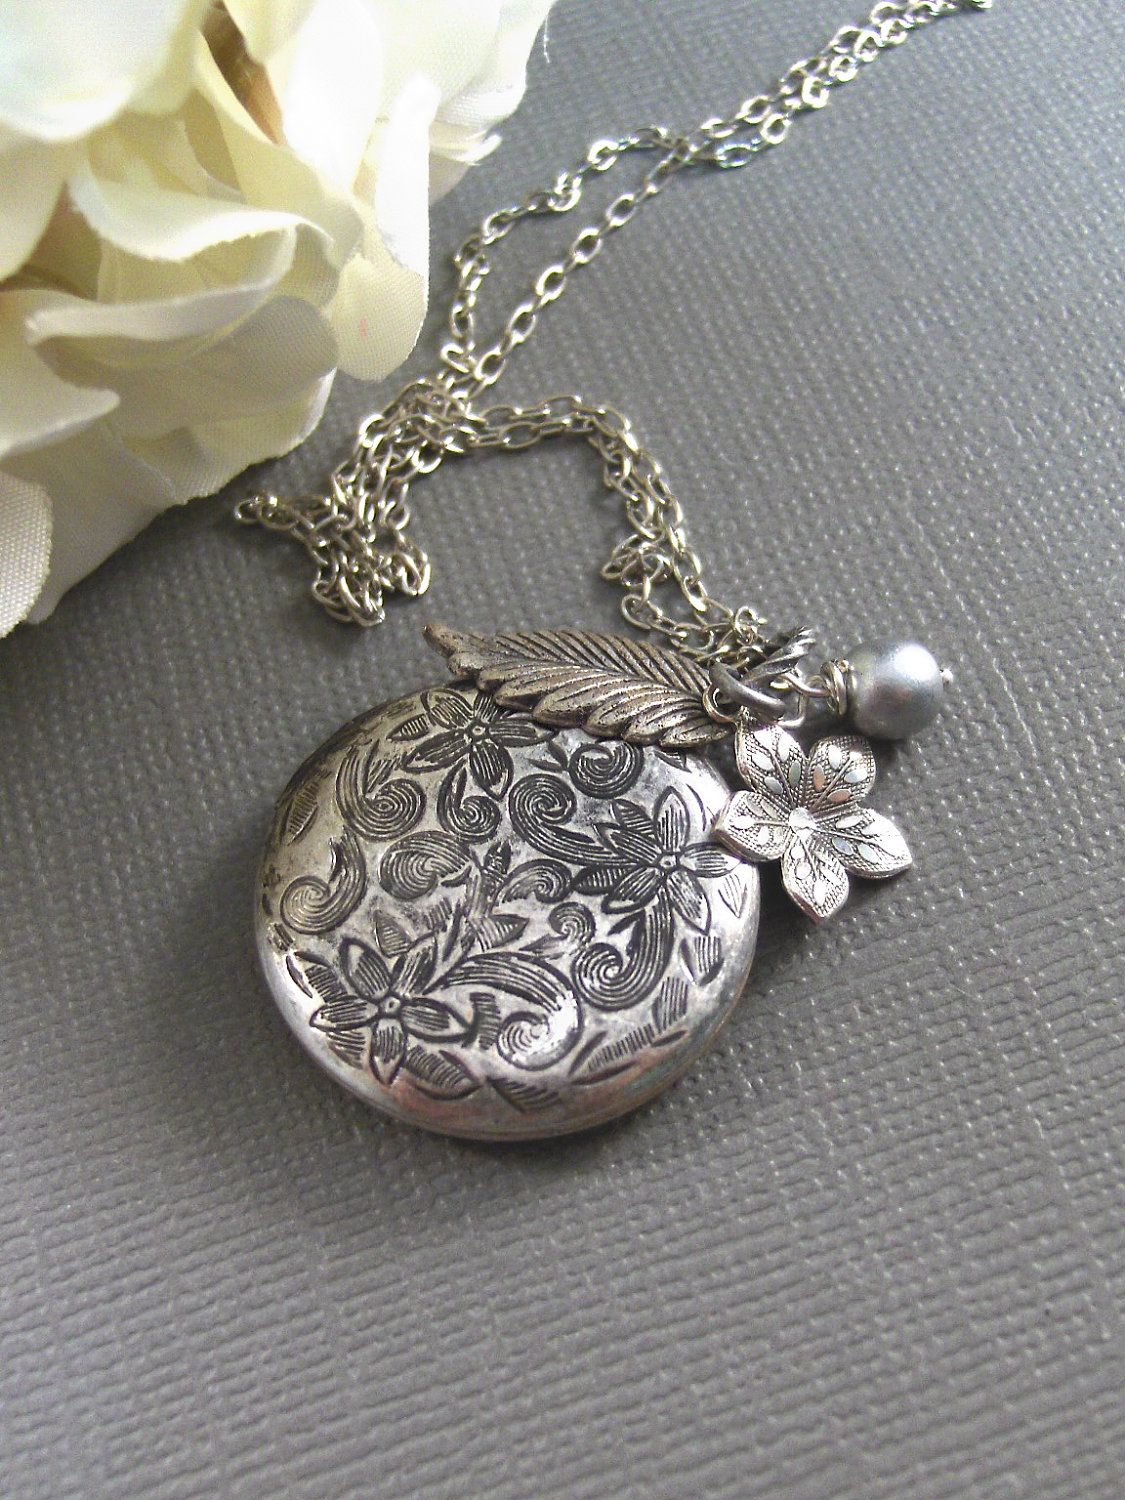 pill finish necklace or antique message amazon com holder silver note solid anatomical heart dp vegan lockets pendant with locket sterling opens box